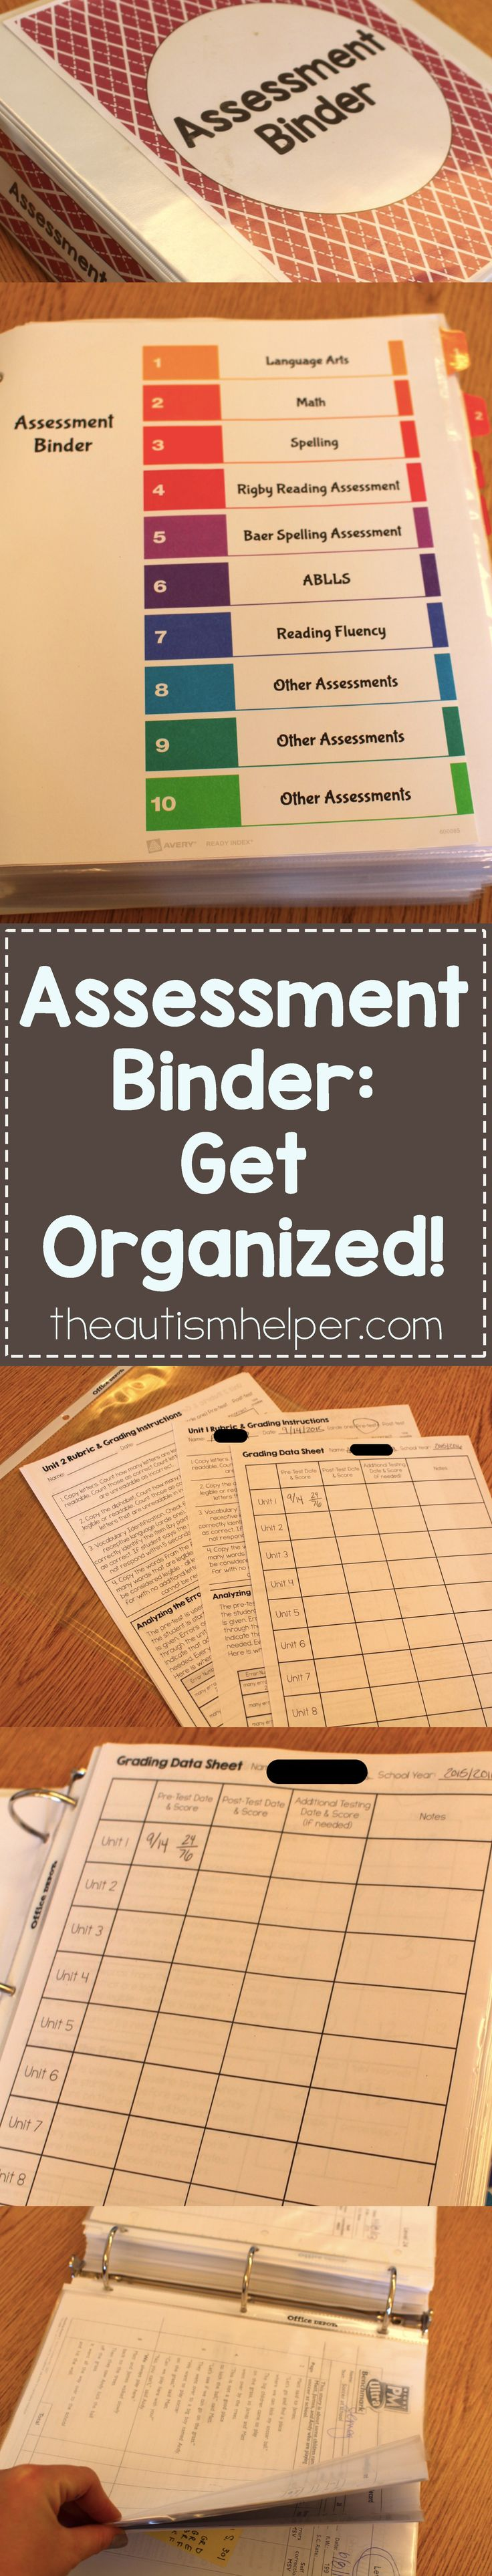 Last year, I shared what was in my assessment binder. This year, I've been helping teachers replicate this system because it worked so well for me! Let's get organized! From theautismhelper.com #theautismhelper